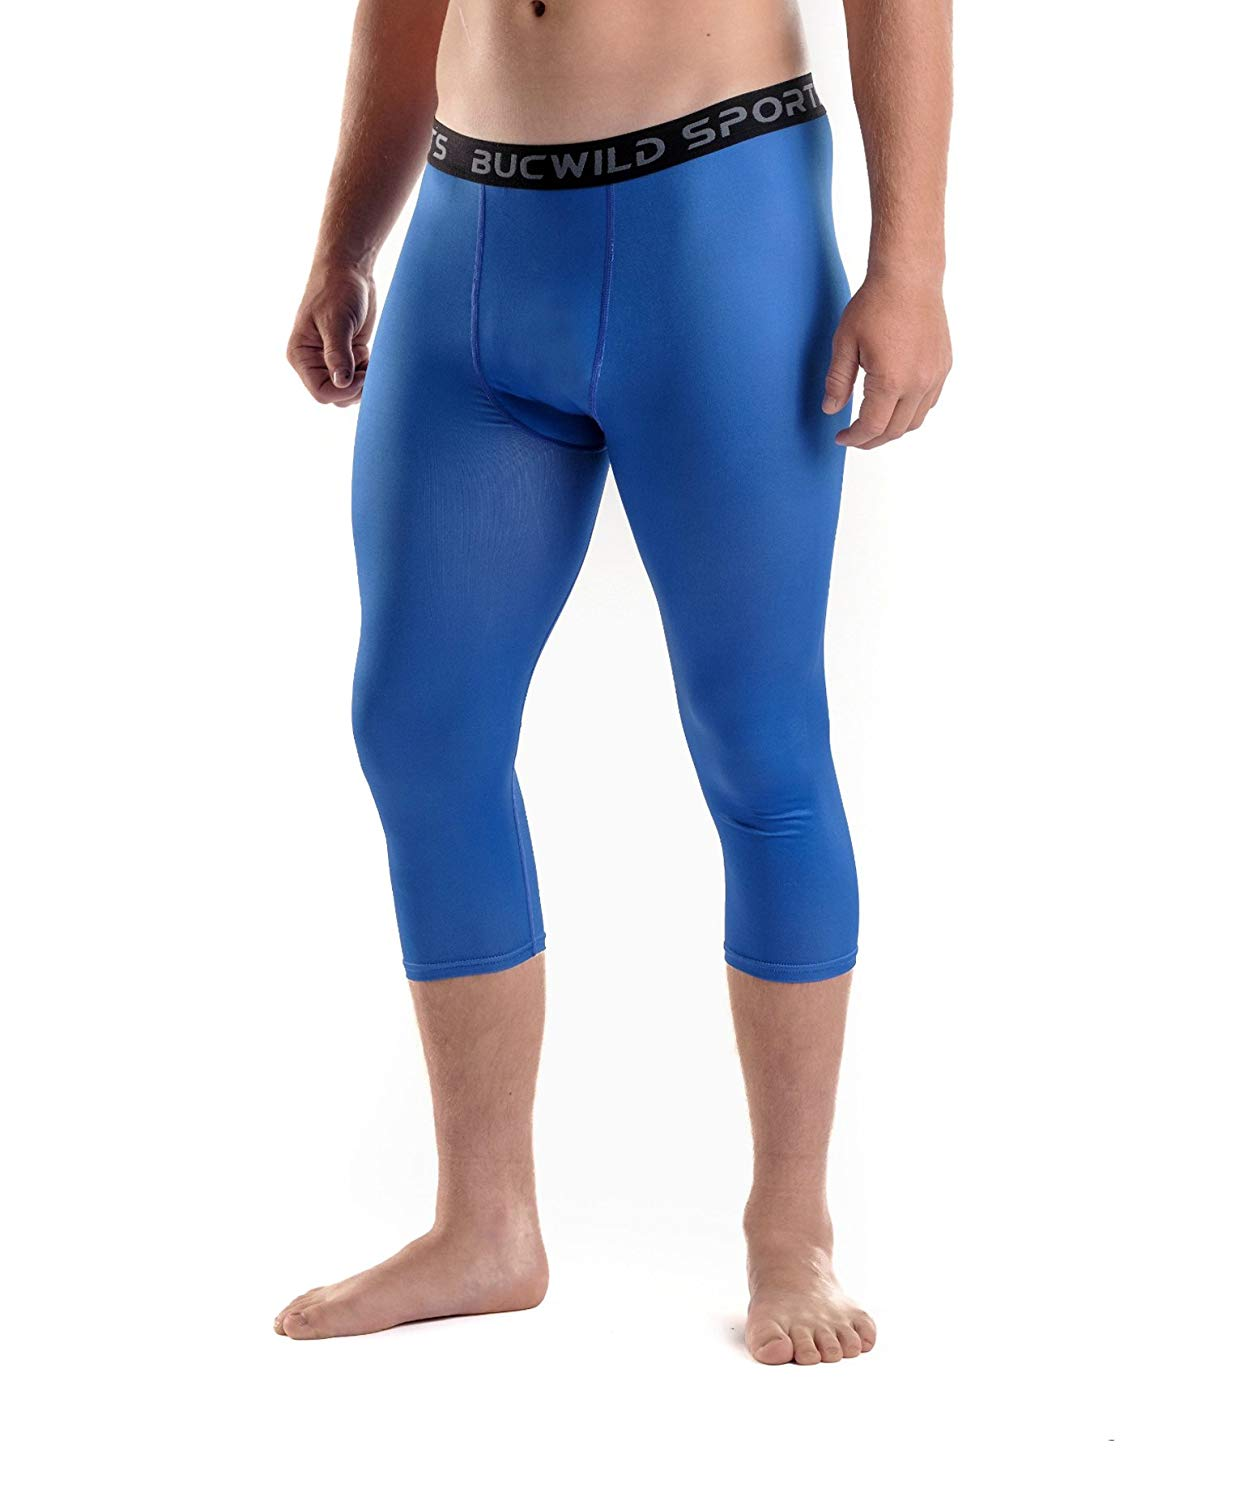 93aa22bda9 Get Quotations · Bucwild Sports 3/4 Basketball Compression Pants Tights for  Youth Boys & Men by